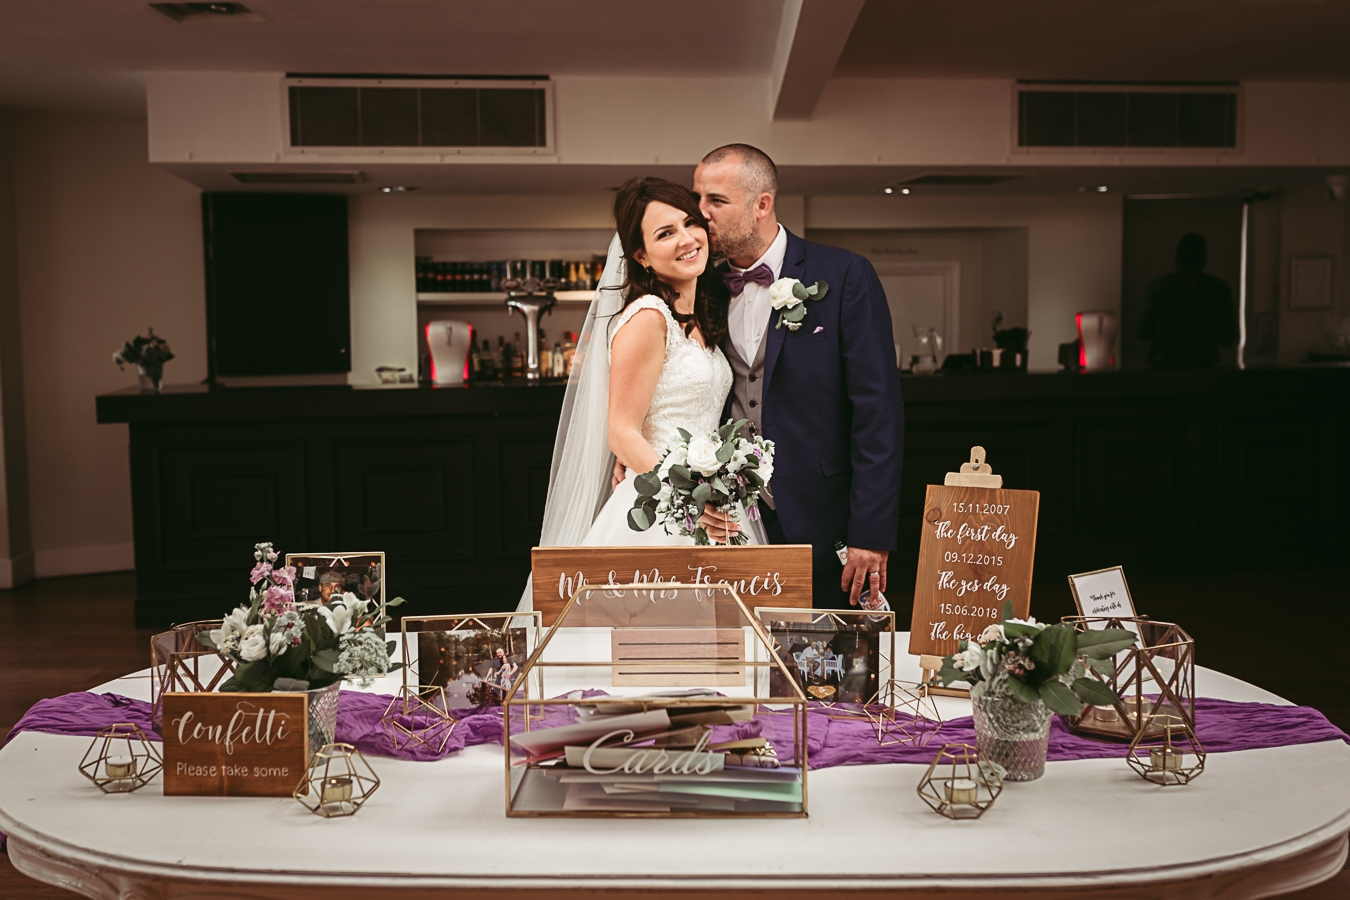 2018 06 15 Siohan  Liam Wedding MS 350 - Relaxed Summer Wedding at Stoke Place - Slough Wedding Photographer